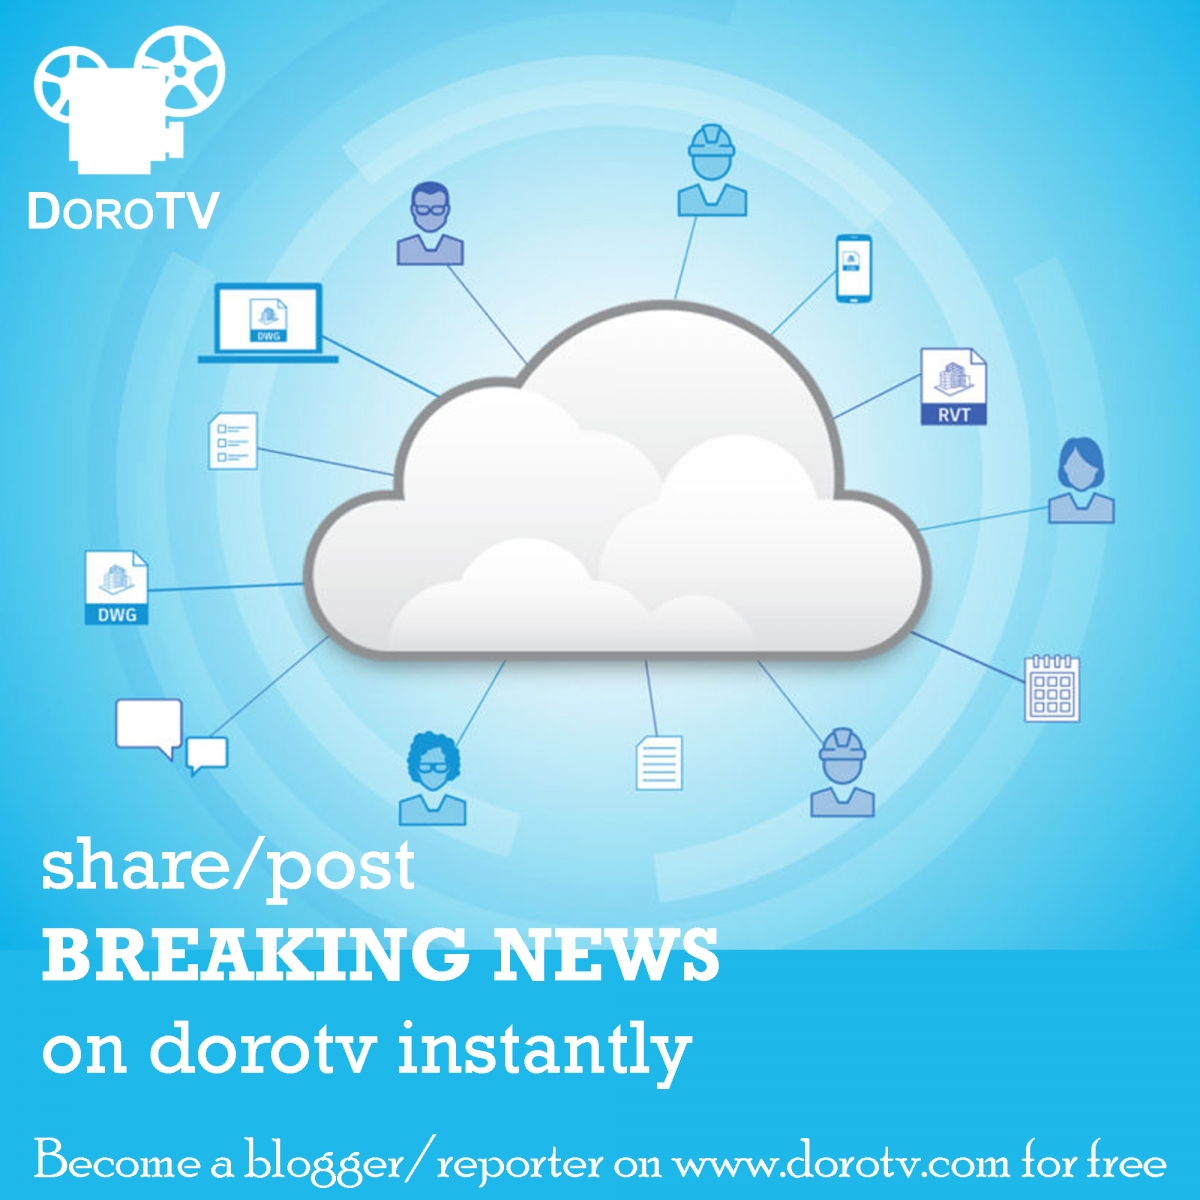 Submit Content to DoroTV for Publication (#free)